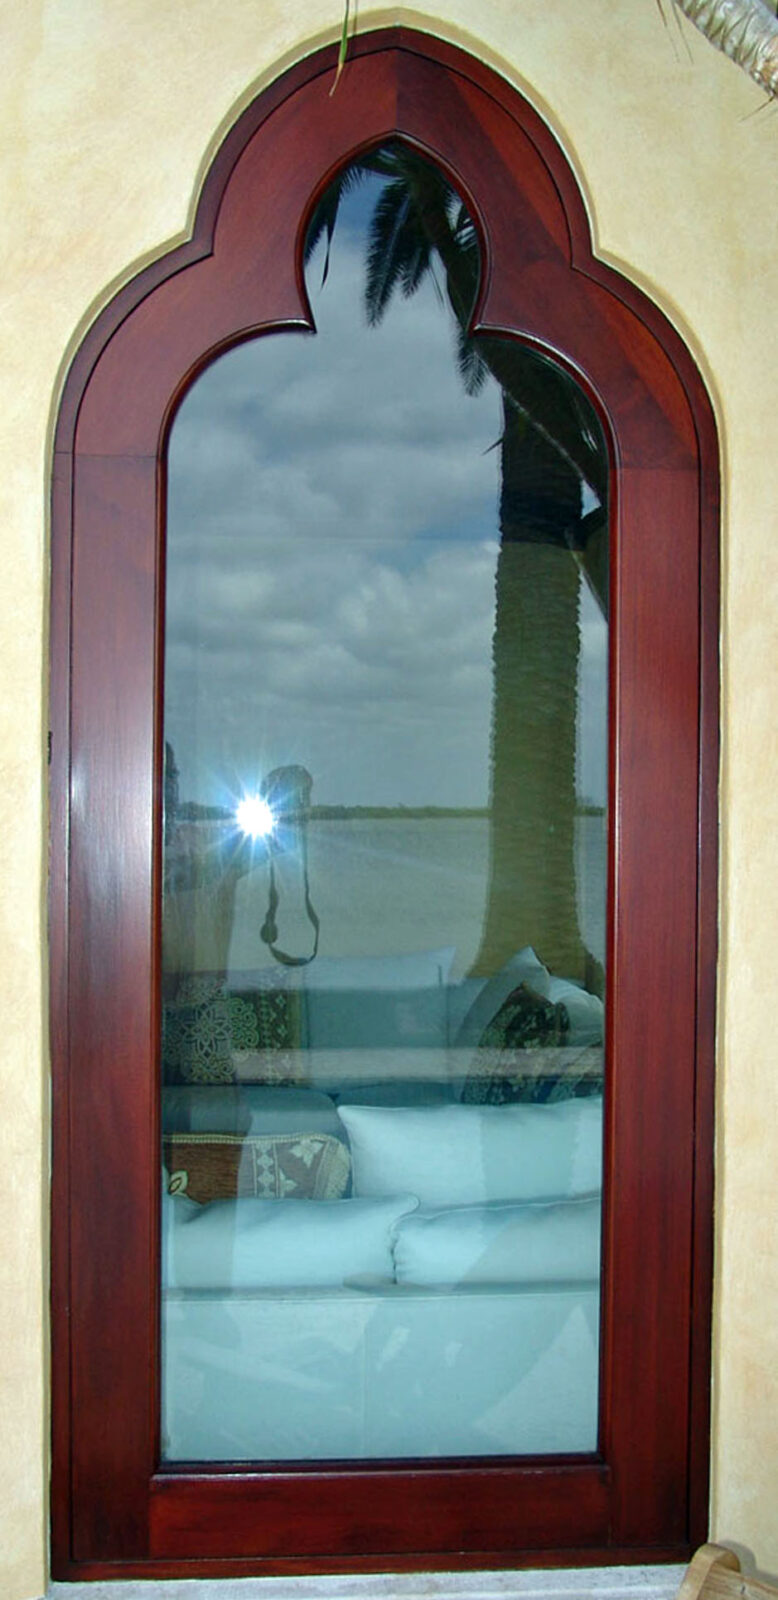 SUNSET ISLAND MAHOGANY FIXED WINDOWS.